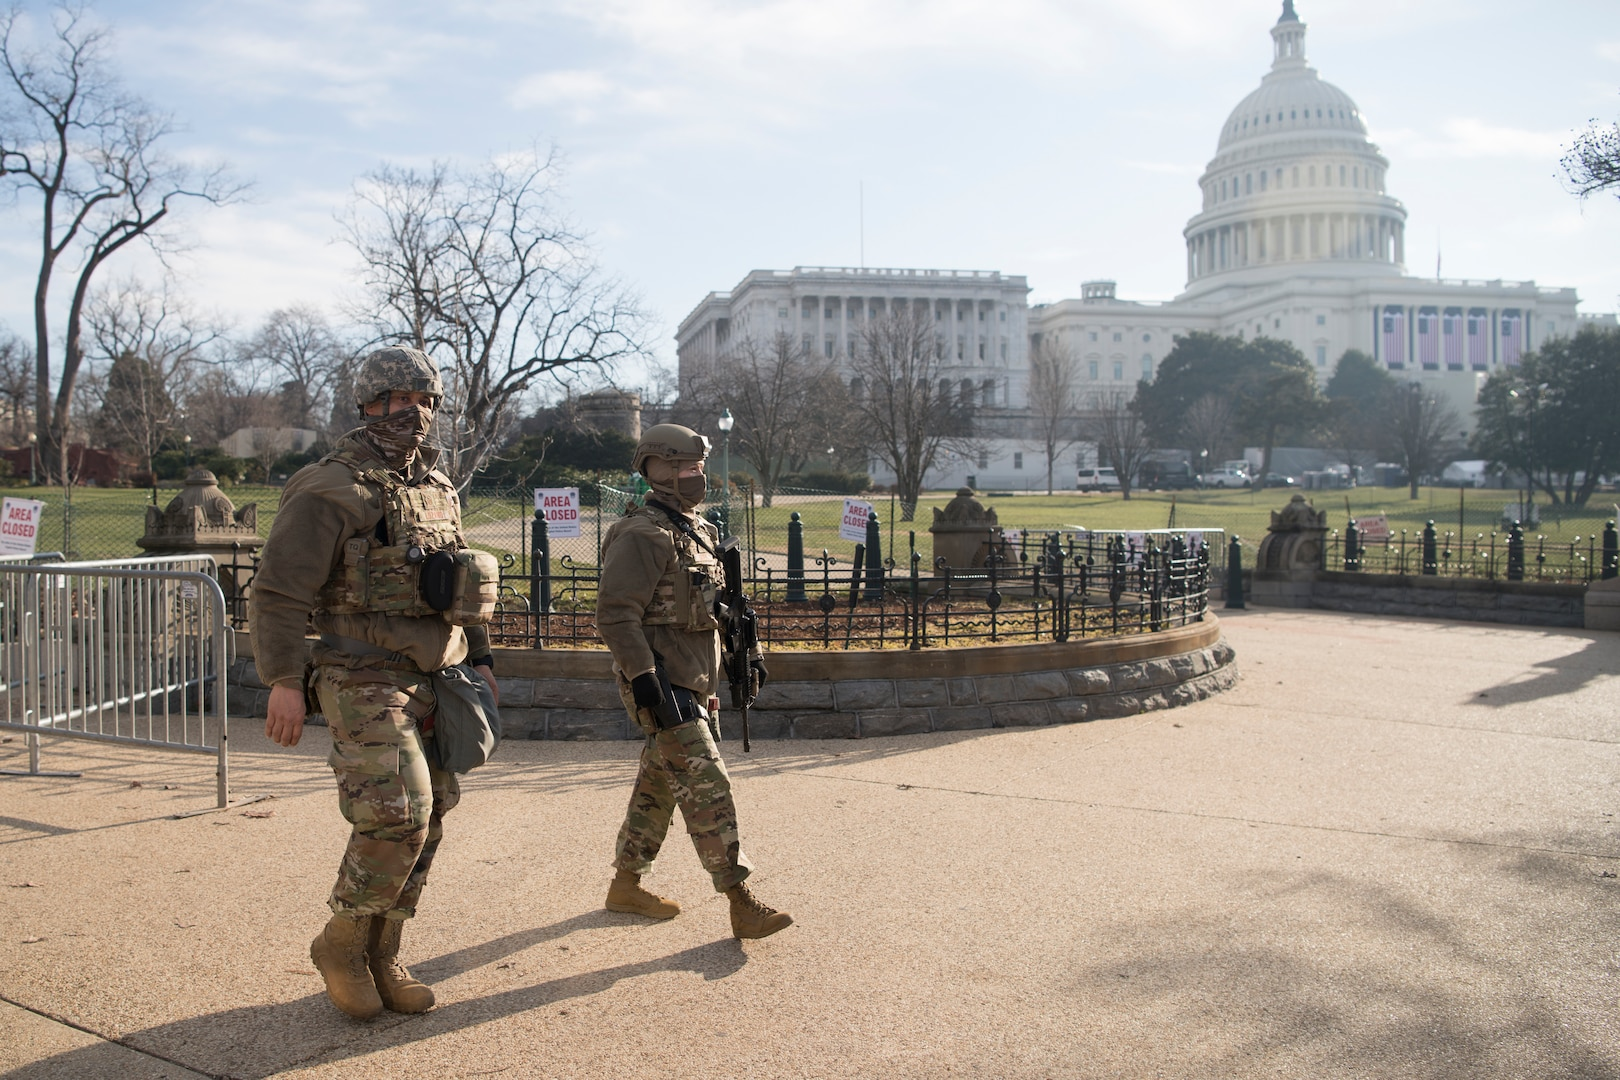 Virginia National Guard helps protect U.S. Capitol